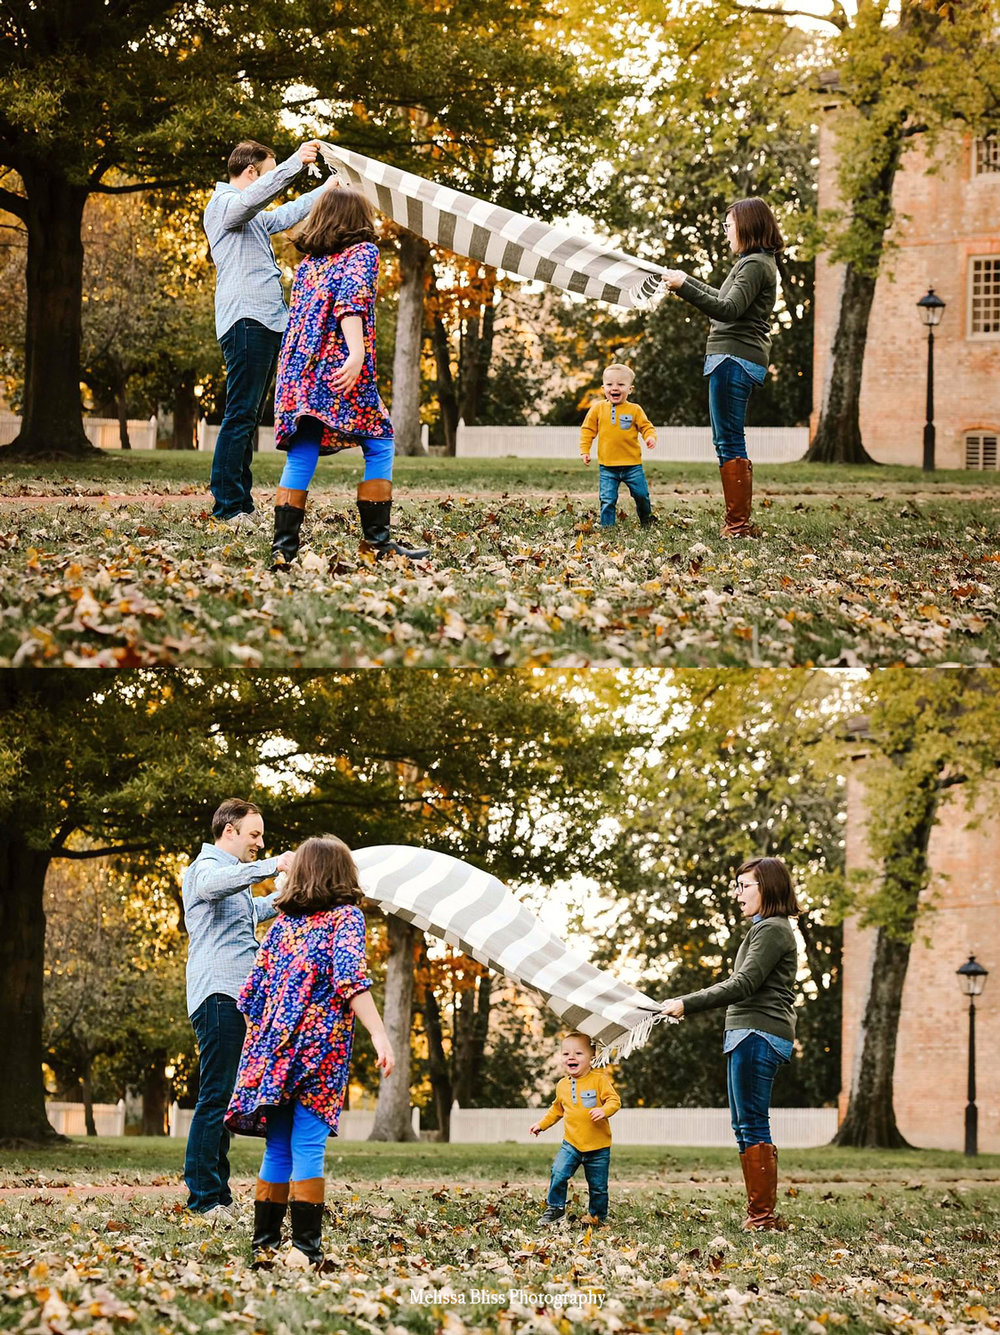 fun-filled-family-lifestyle-photos-in-colonial-williamsburg-by-melissa-bliss-photography-hampton-roads-family-photographer.jpg